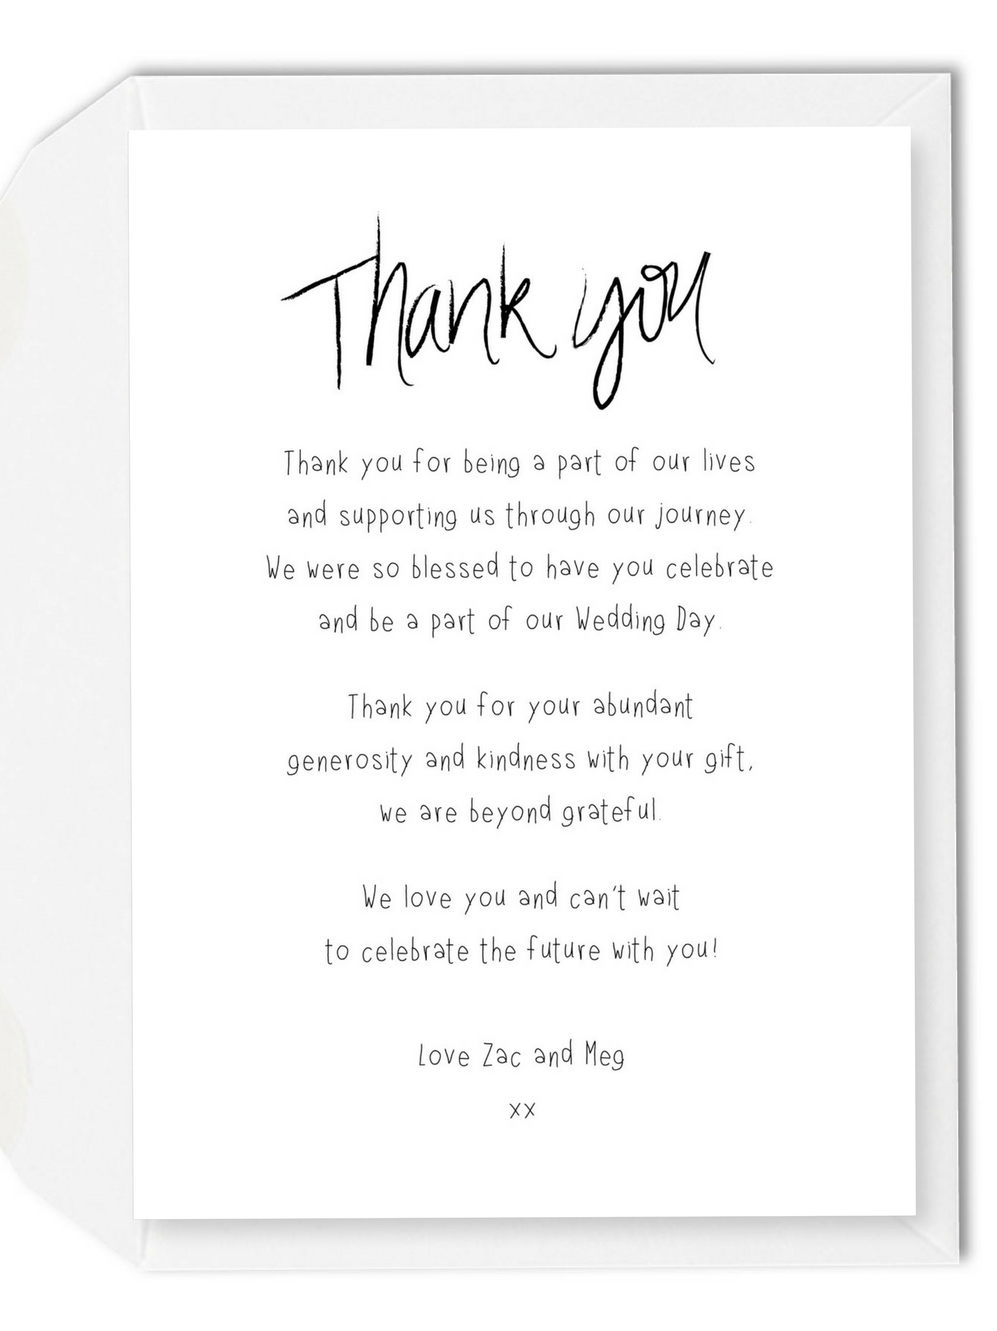 Wedding Card Thank You Card Wording In 2020 Thank You Card Wording Wedding Thank You Cards Wording Thank You Note Wording